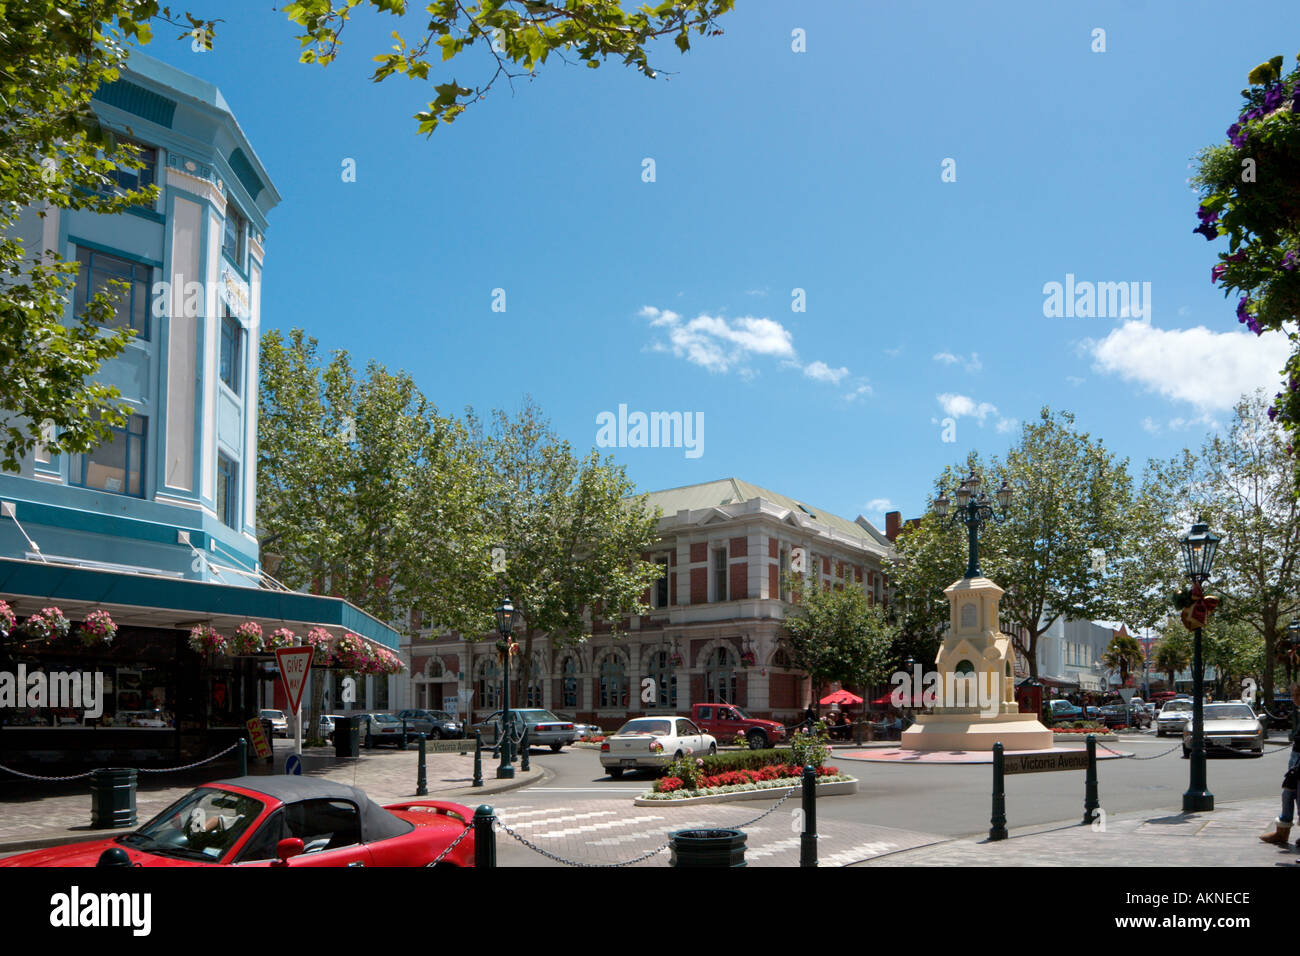 Victora Avenue in the town centre of Wanganui, North Island, New Zealand - Stock Image